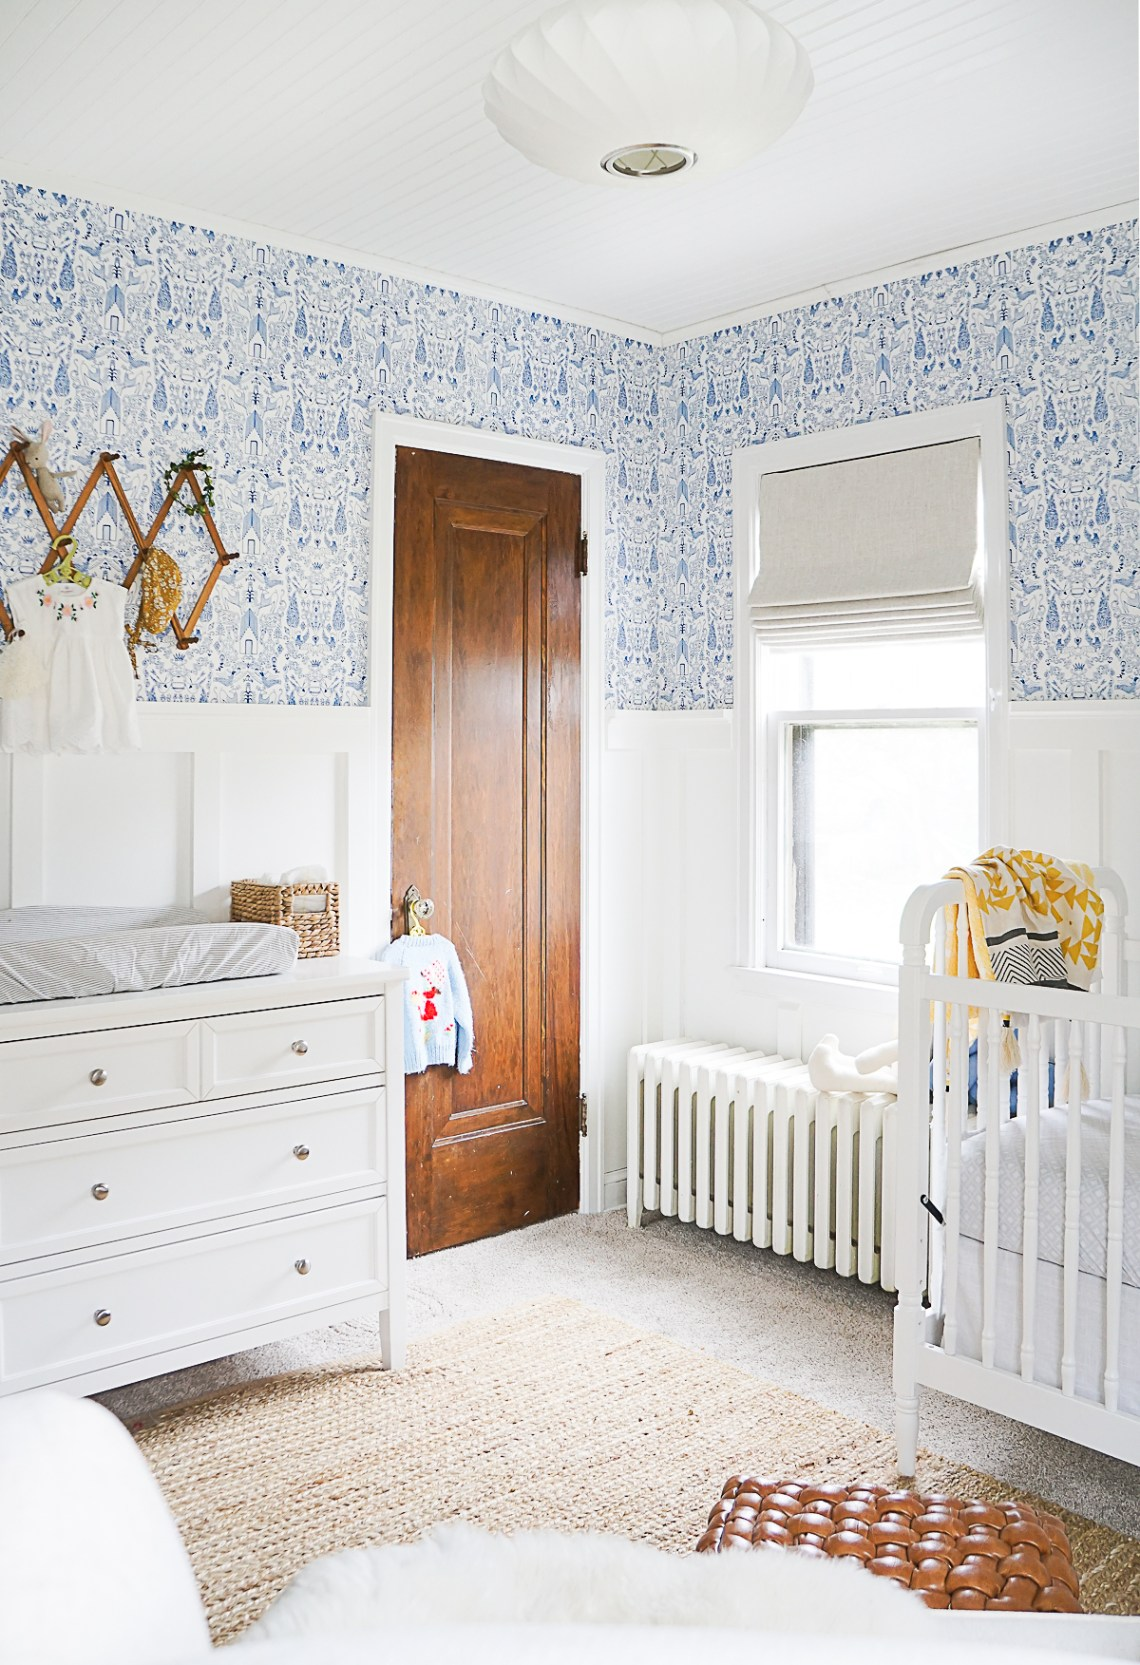 Learn what to look for when picking nursery window coverings to help make everyday life easier when it comes to naps and bedtime.